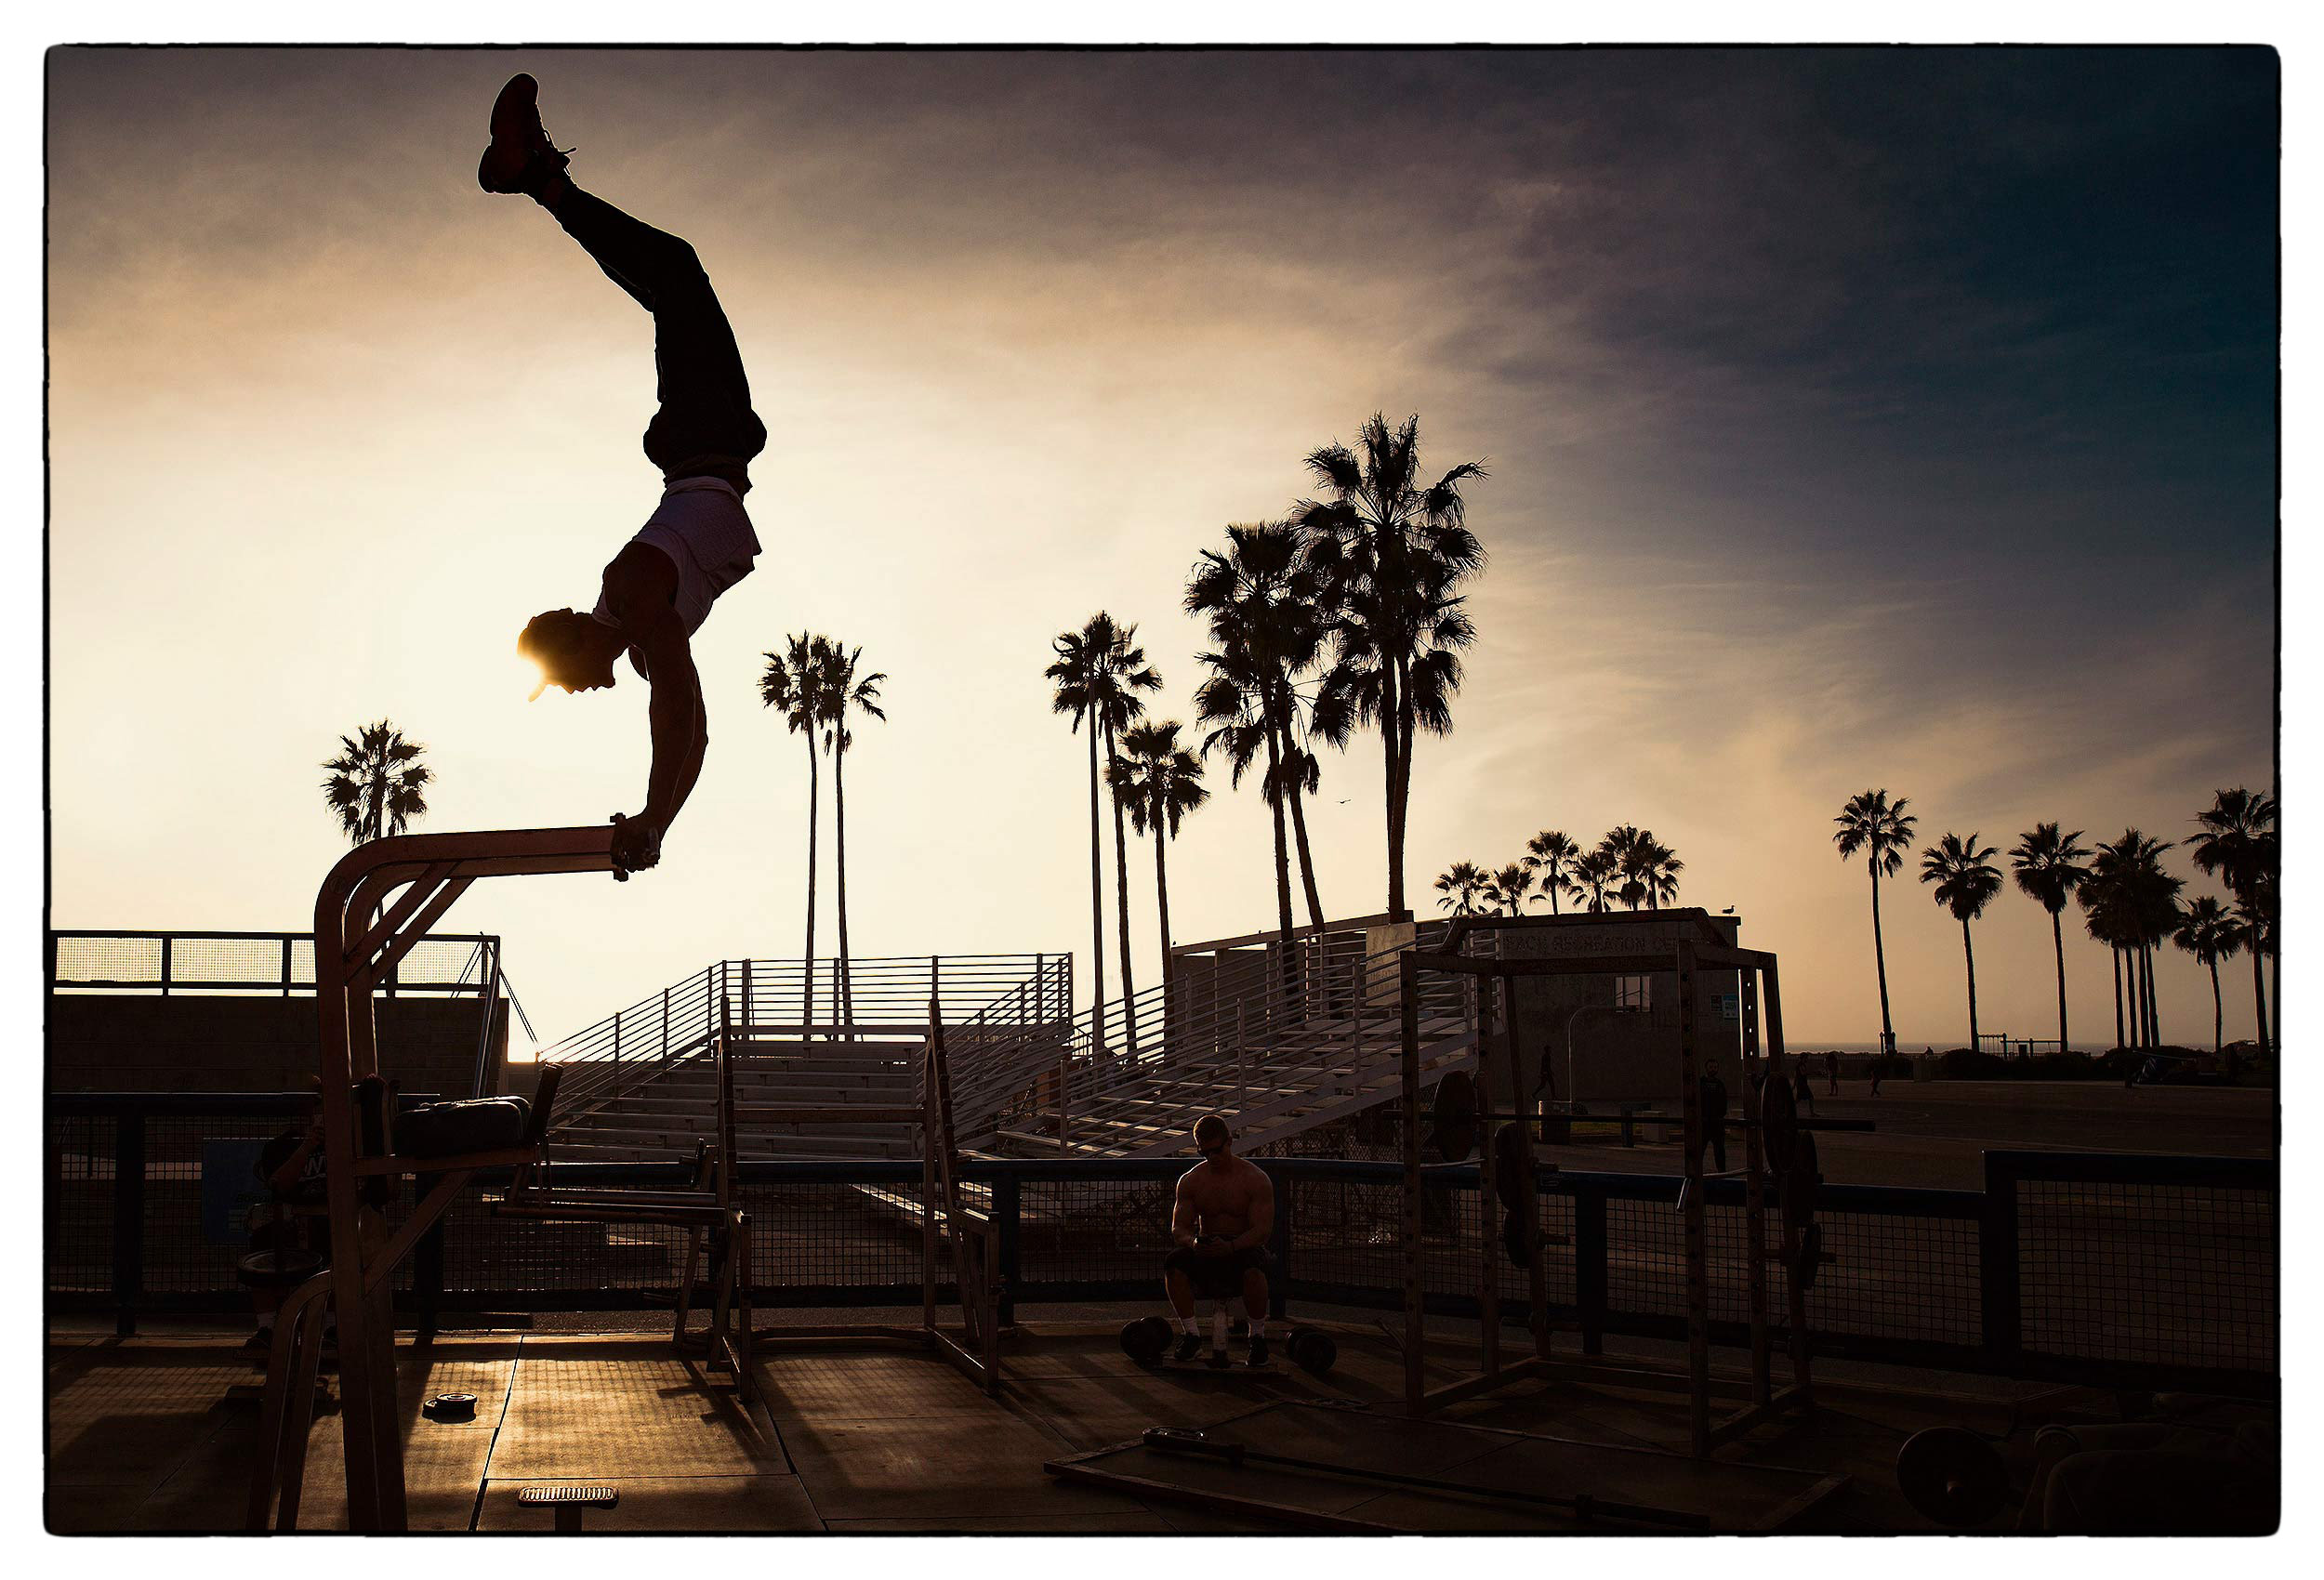 a-man-is-sillhouetted-as-he-works-out-at-venice-californias-muscle-beach2